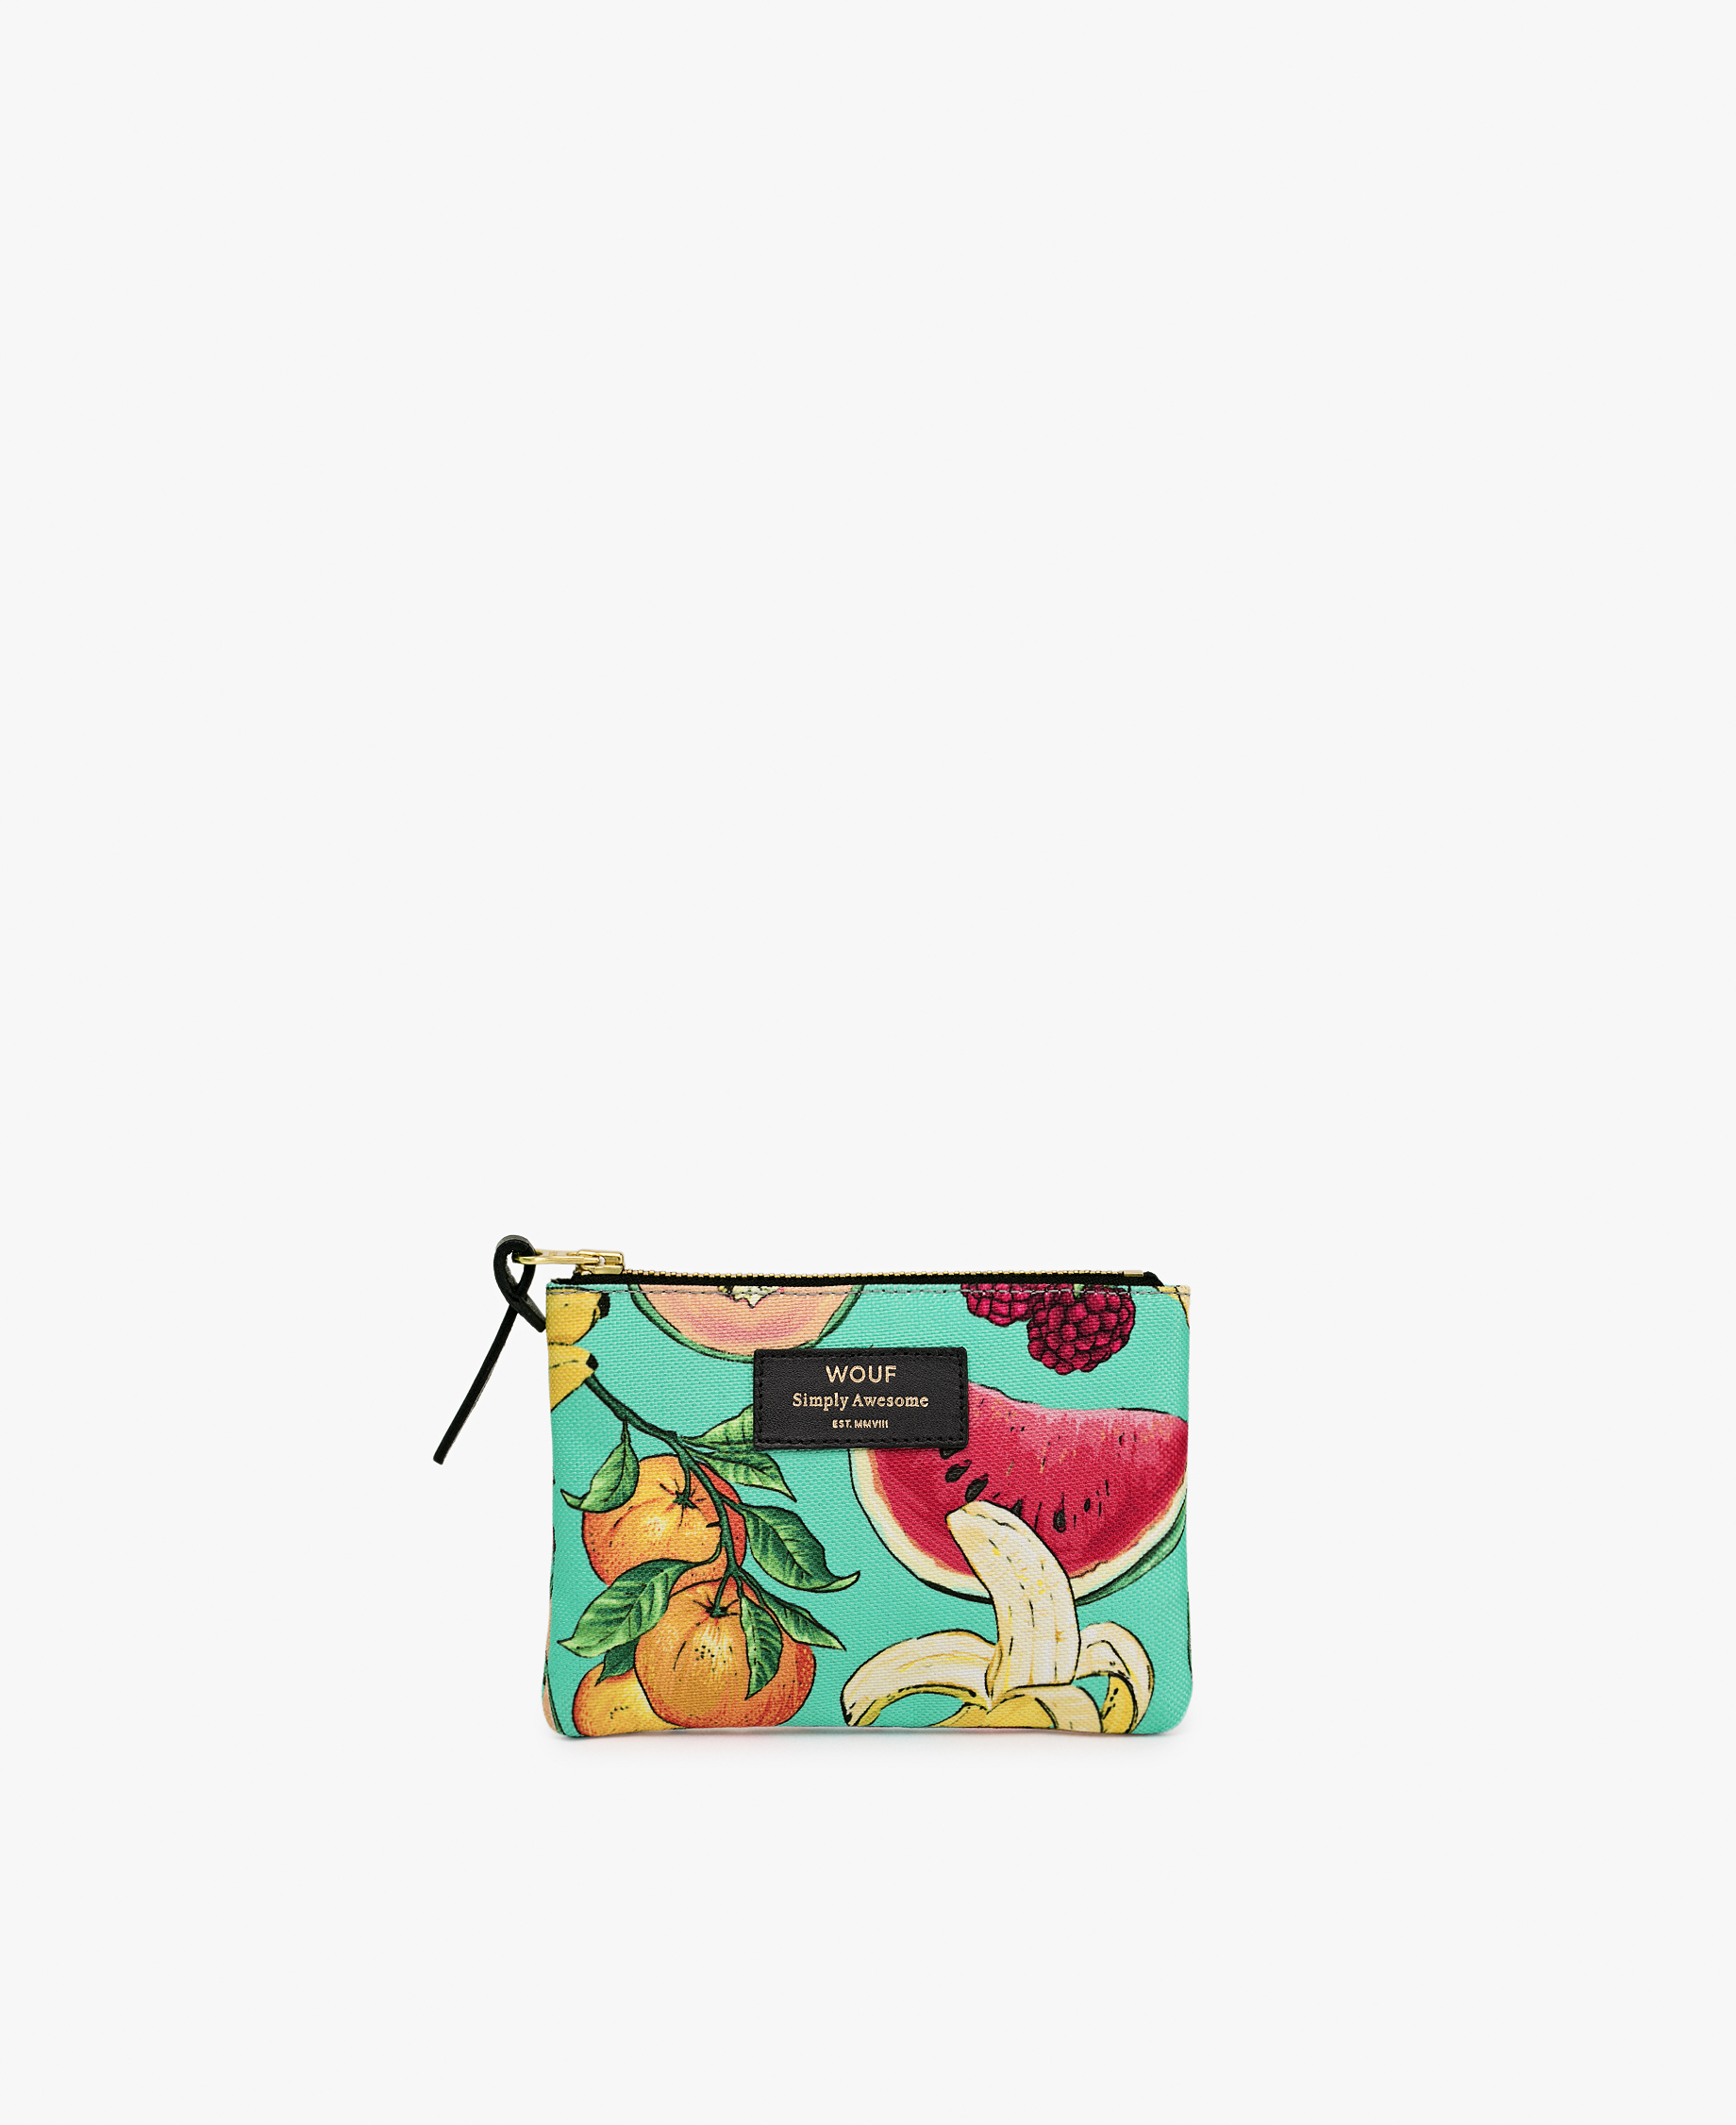 pouch bag with fruits